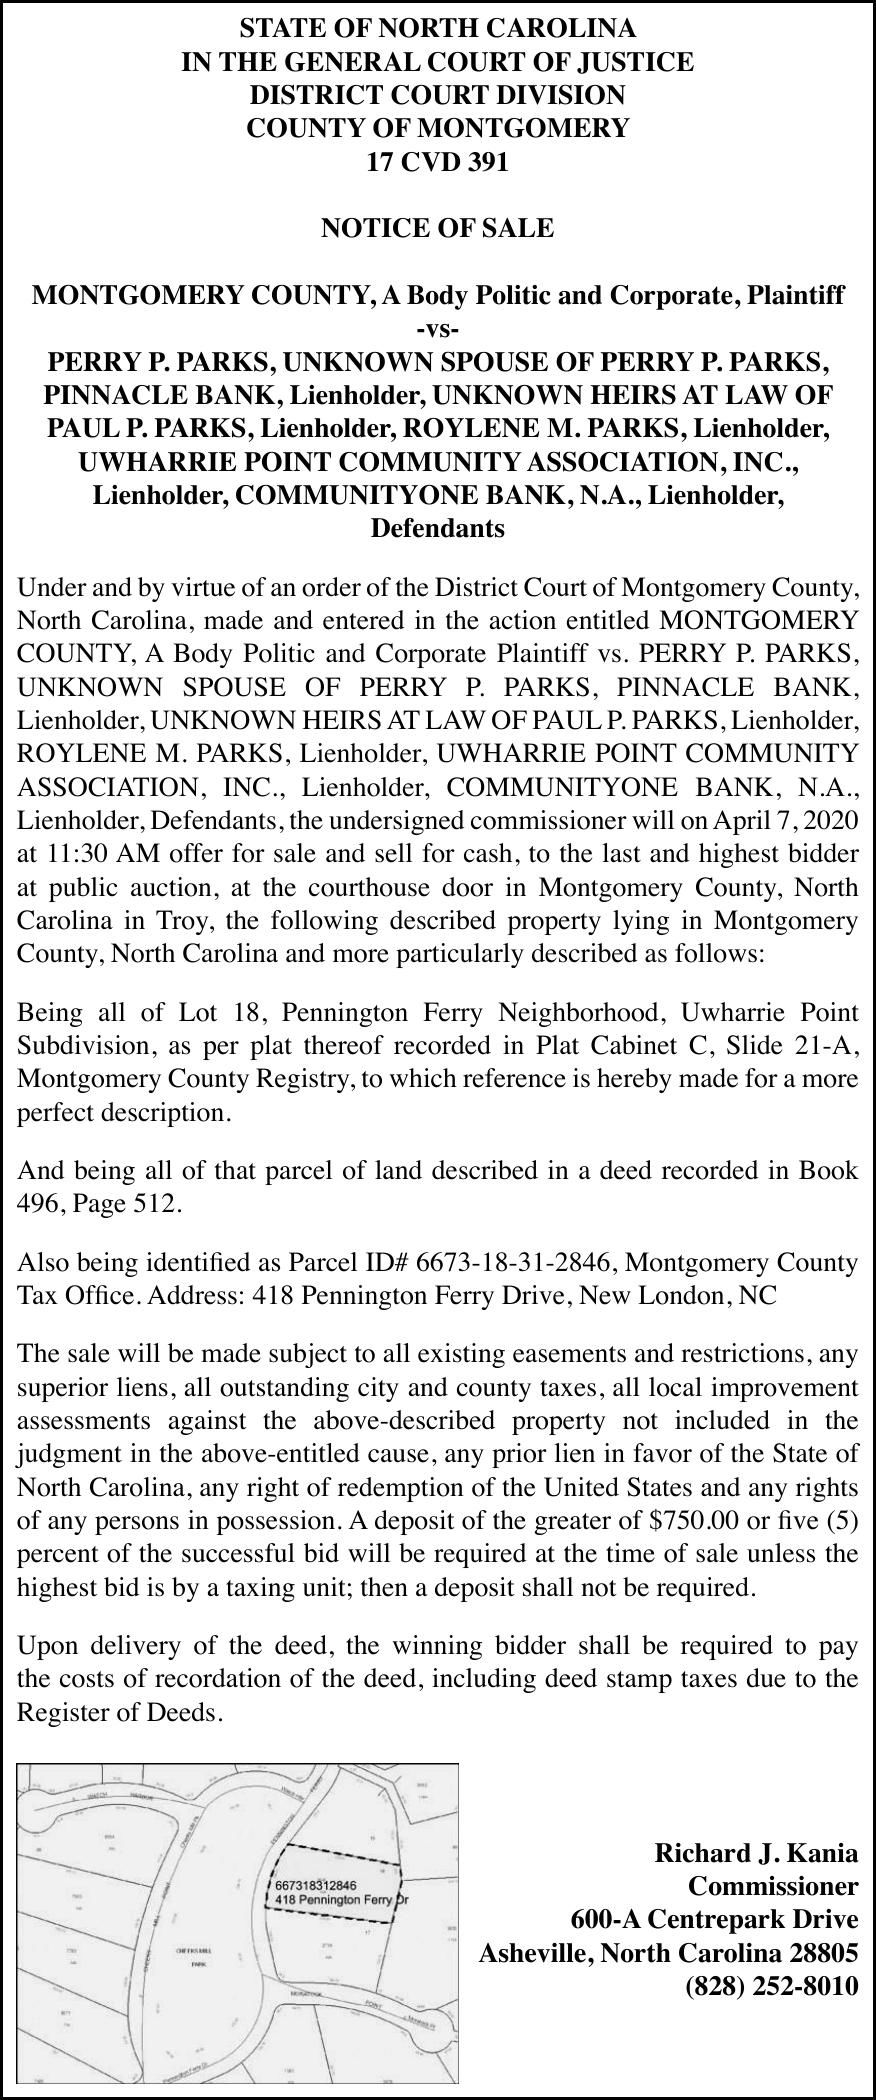 Notice of Foreclosure - PARKS, PERRY